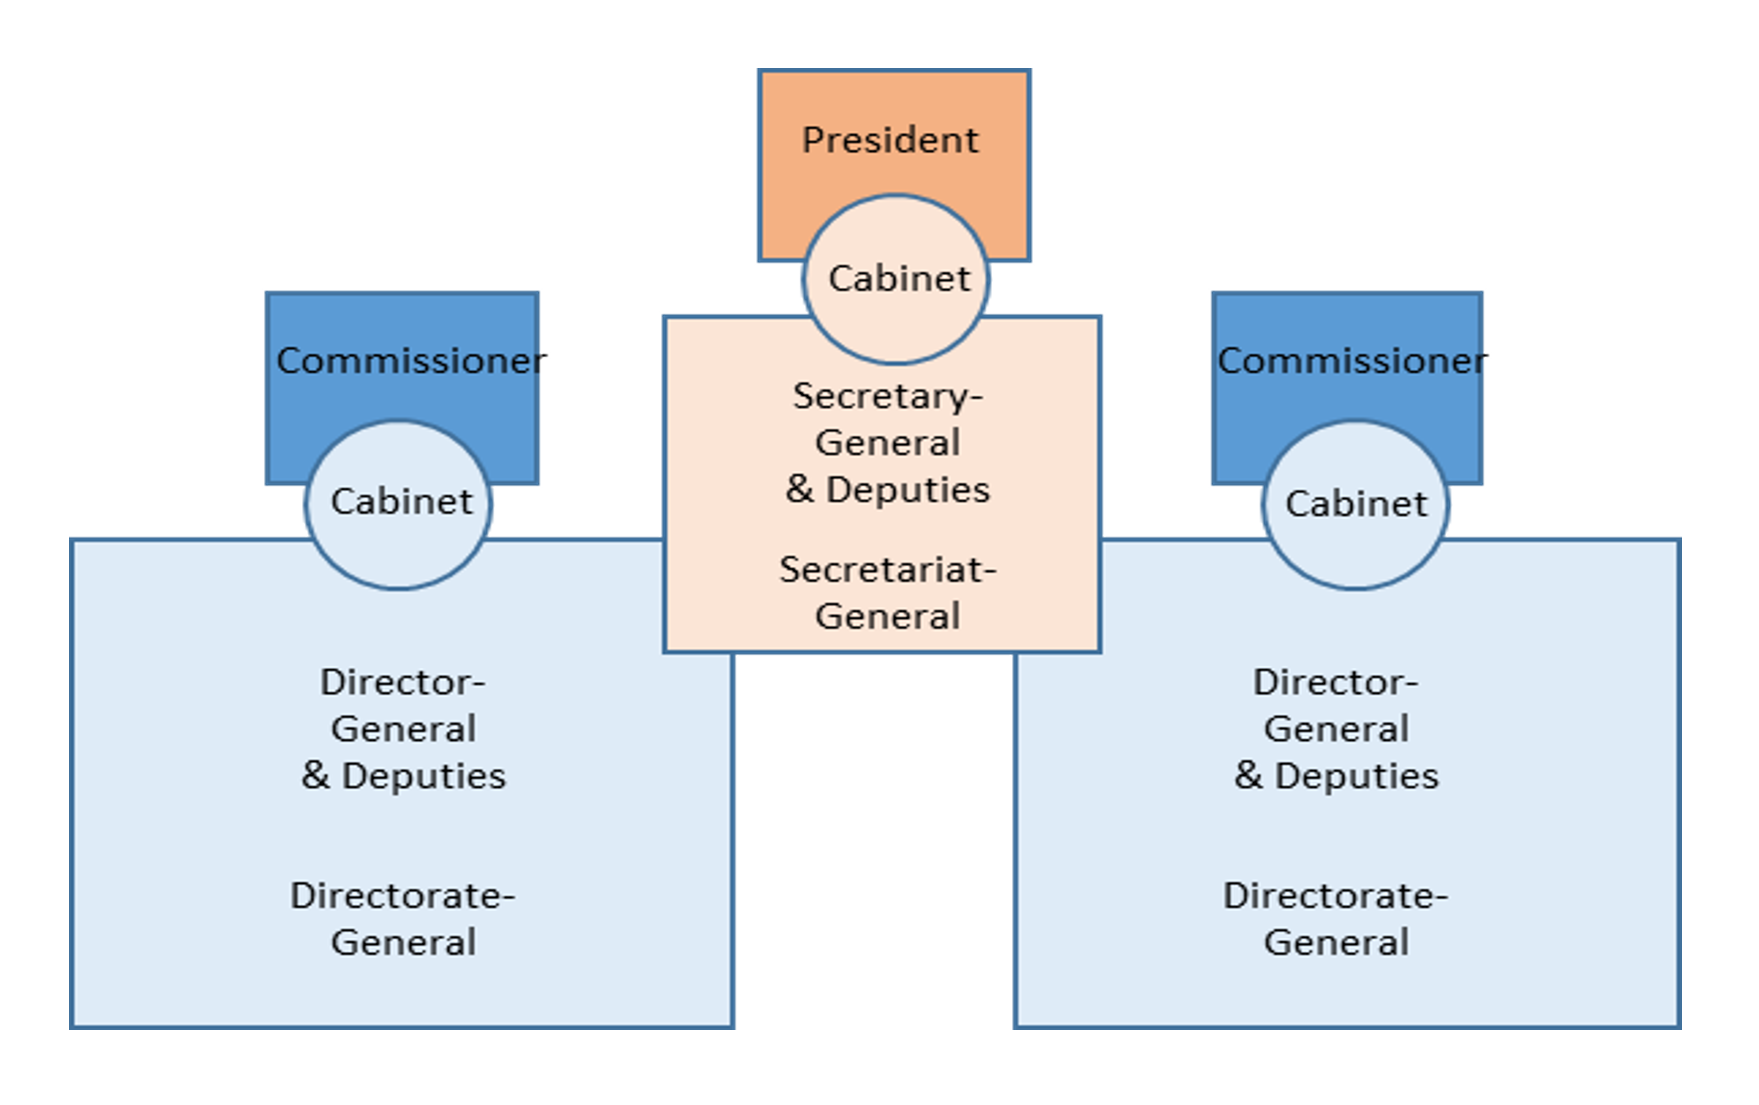 Structure of the Commission services